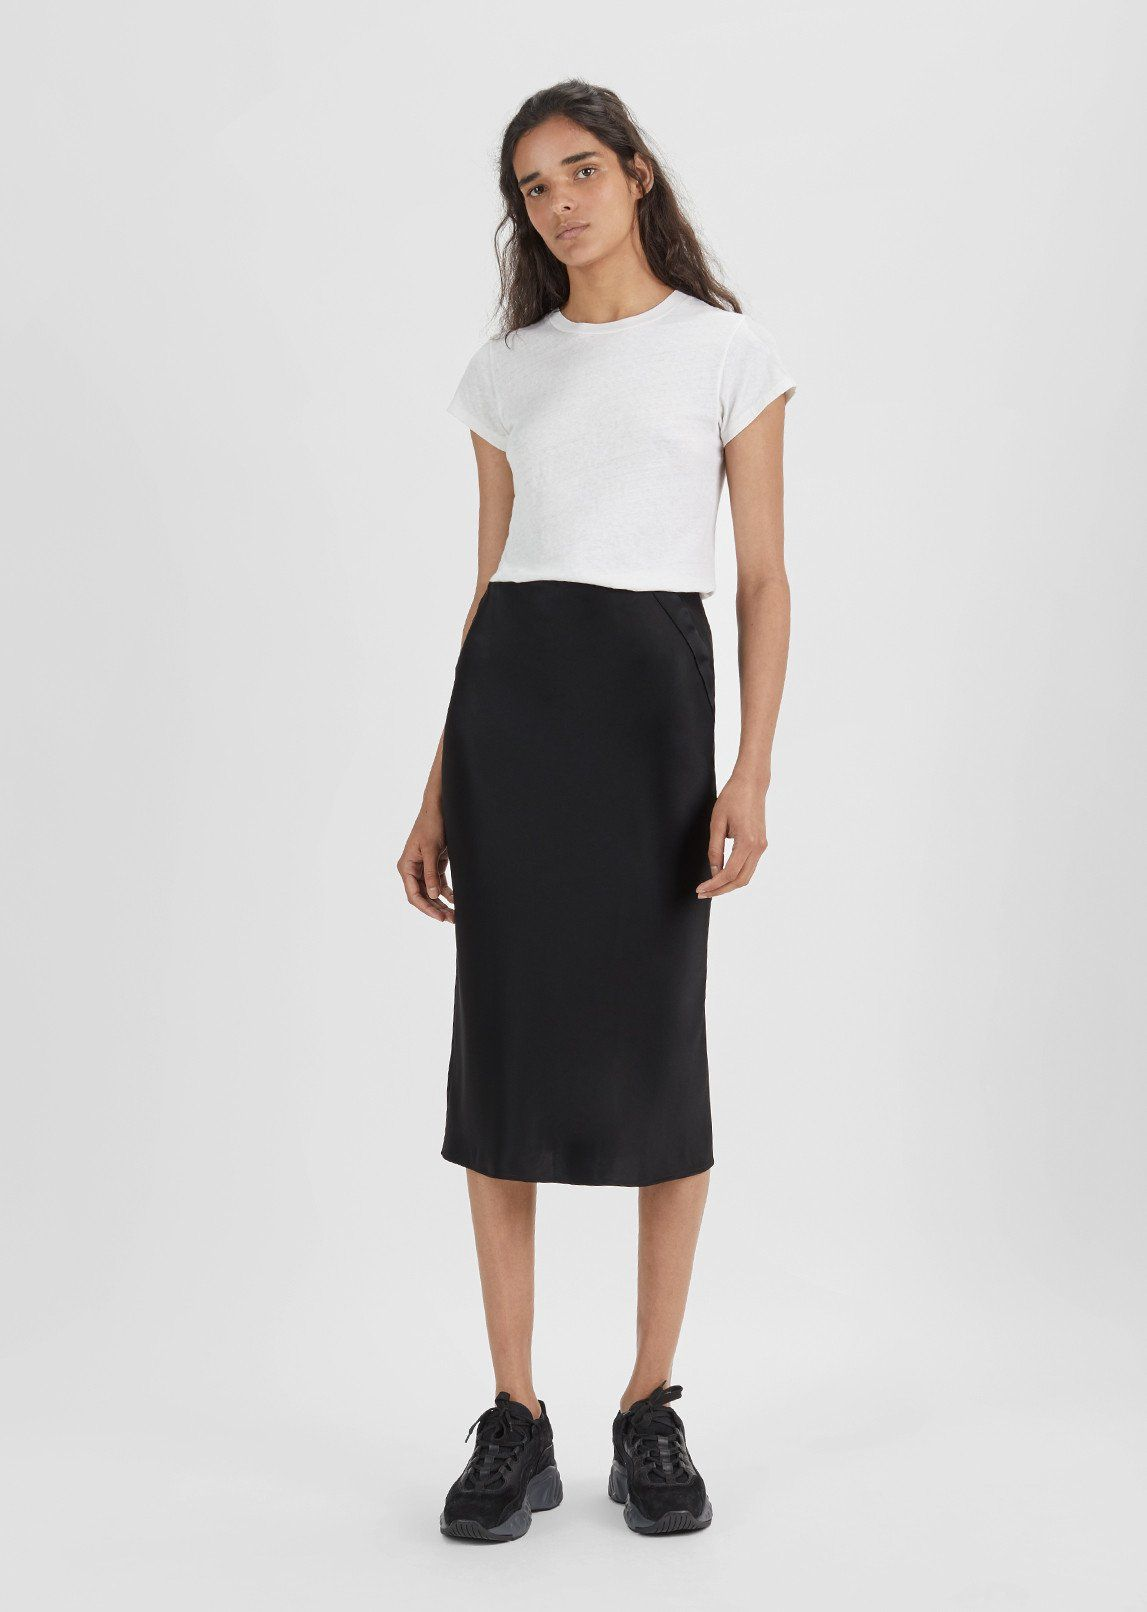 cb97b69c4 Black slim midi skirt with a curved side placket extends into a snap  closure for an adjustable back slit. Slim fit. Side zip closure. Color:  Black.